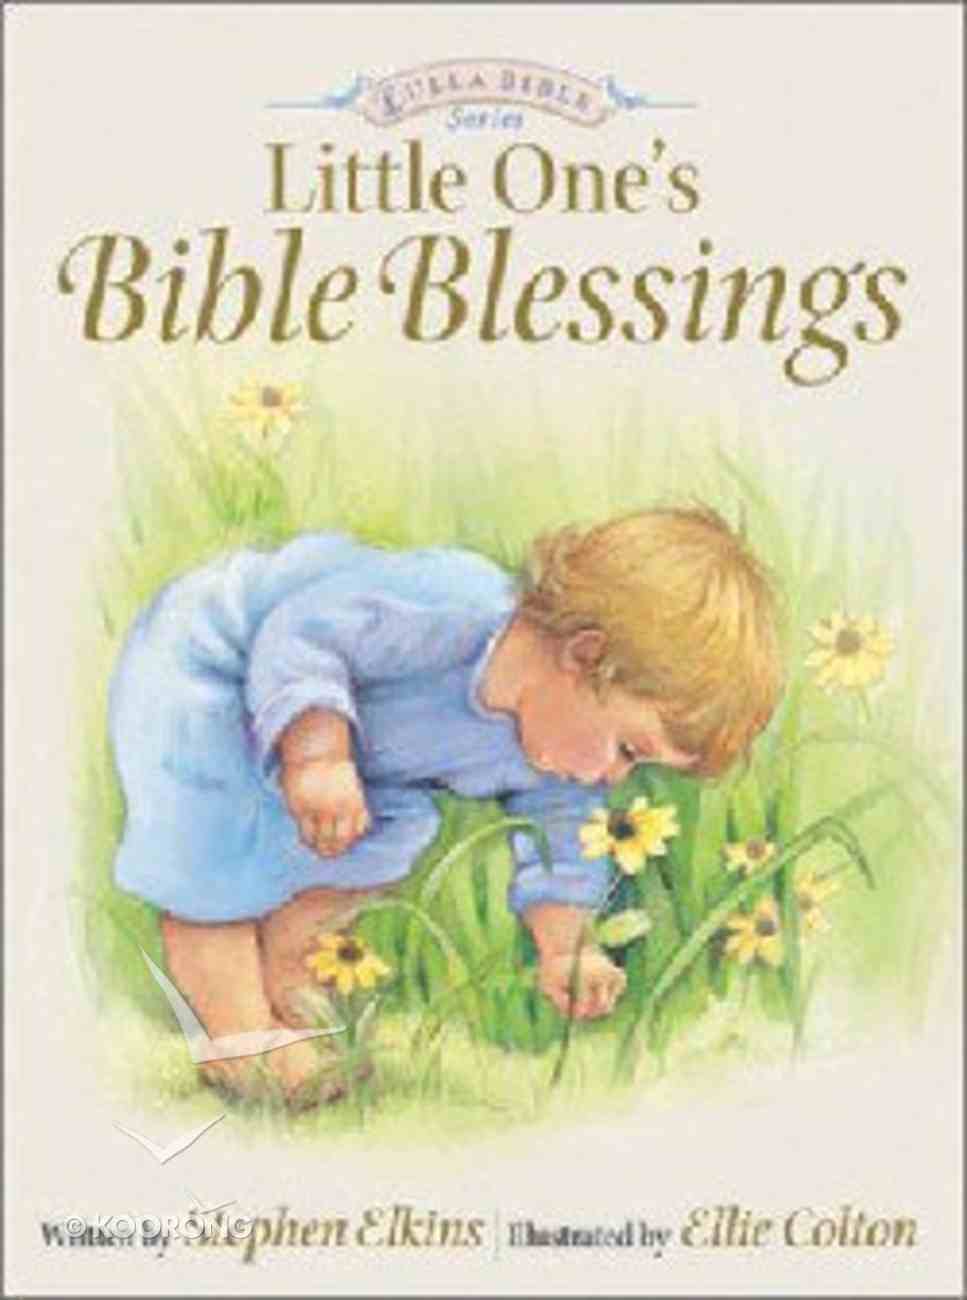 Little One's Bible Blessings (Lullabible Series) Board Book